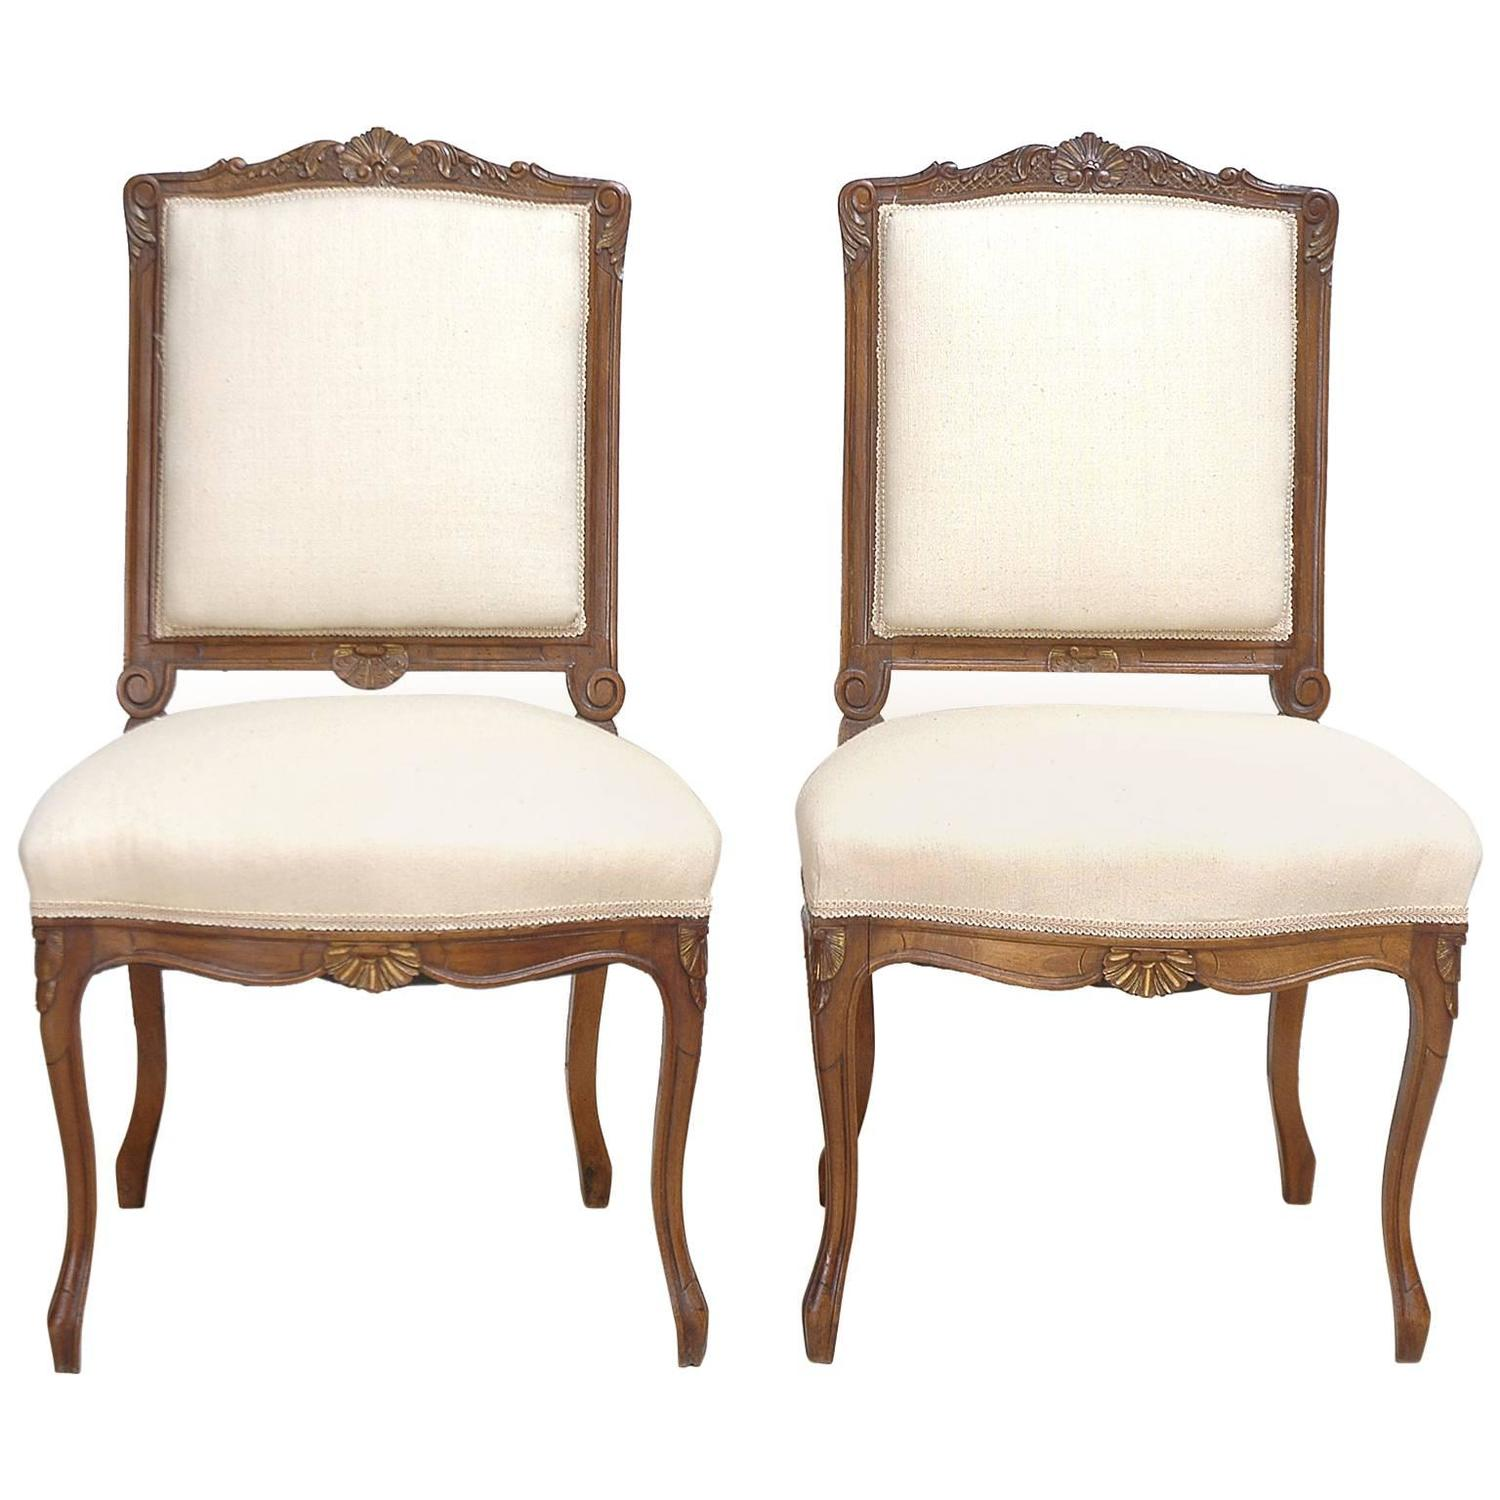 Pair Of 19th Century French Regency Style Chairs